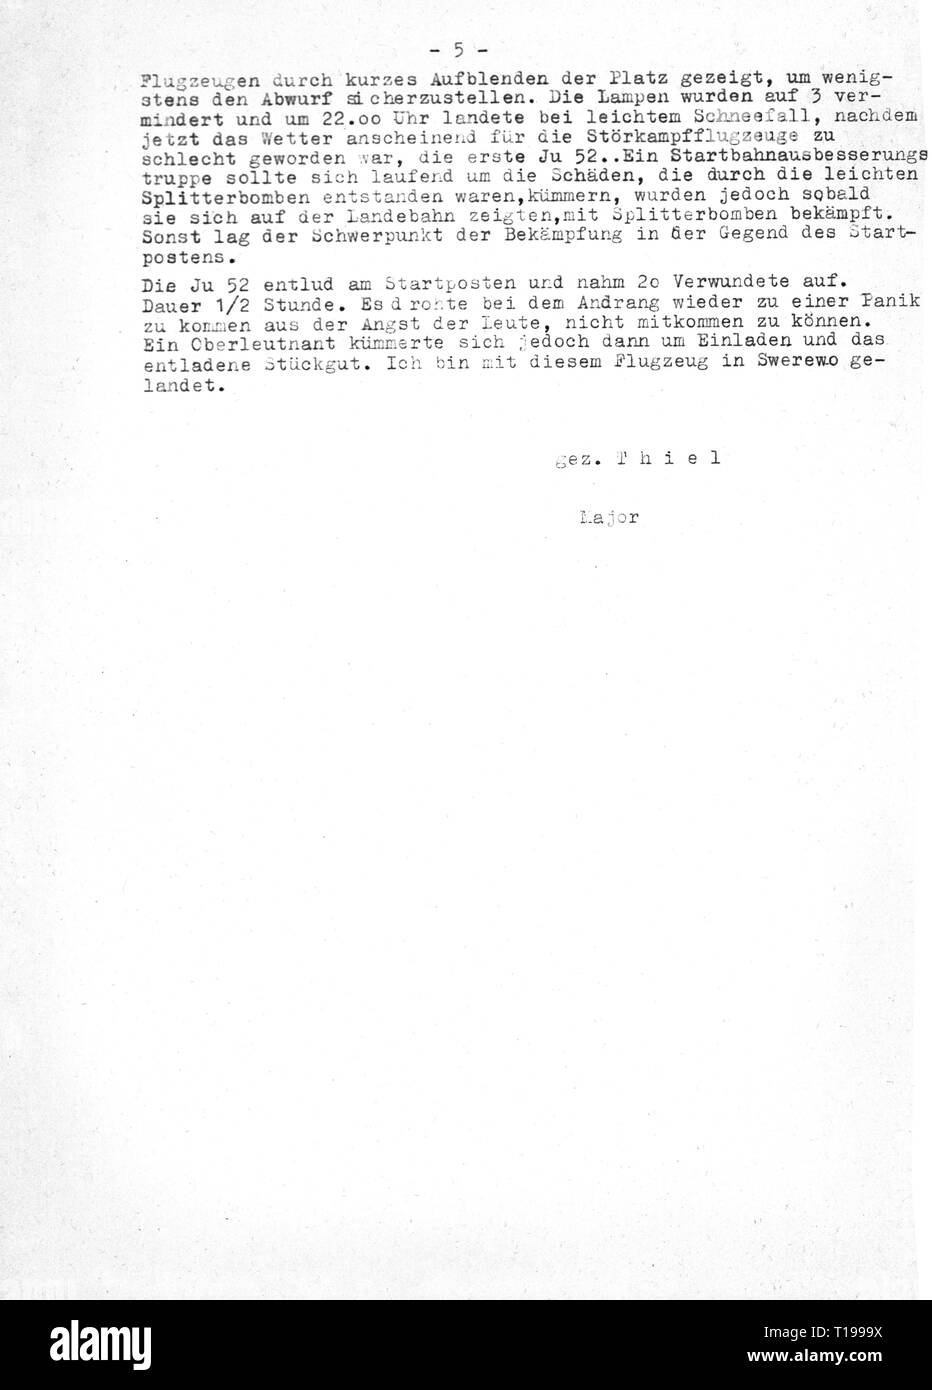 """Second World War / WWII, Russia, Battle of Stalingrad, 23.8.1942 - 2.2.1943, report of major Erich Thiel, Commanding Officer of III Group, Fighter Wing 27 """"Boelcke"""", about the condition of the airfield Gumrak and the consultation with Field Marshal General Friedrich Paulus, general commanding 6th Army, to Field Marshal Erhard Milch, Inspector General of the Luftwaffe (German Air Force), command post Stalino, 21.1.1943, copy, page 5, dispatch, despatch, dispatches, despatches, encirclement, German Luftwaffe (German Air Force), Wehrmacht, armed for, Additional-Rights-Clearance-Info-Not-Available Stock Photo"""